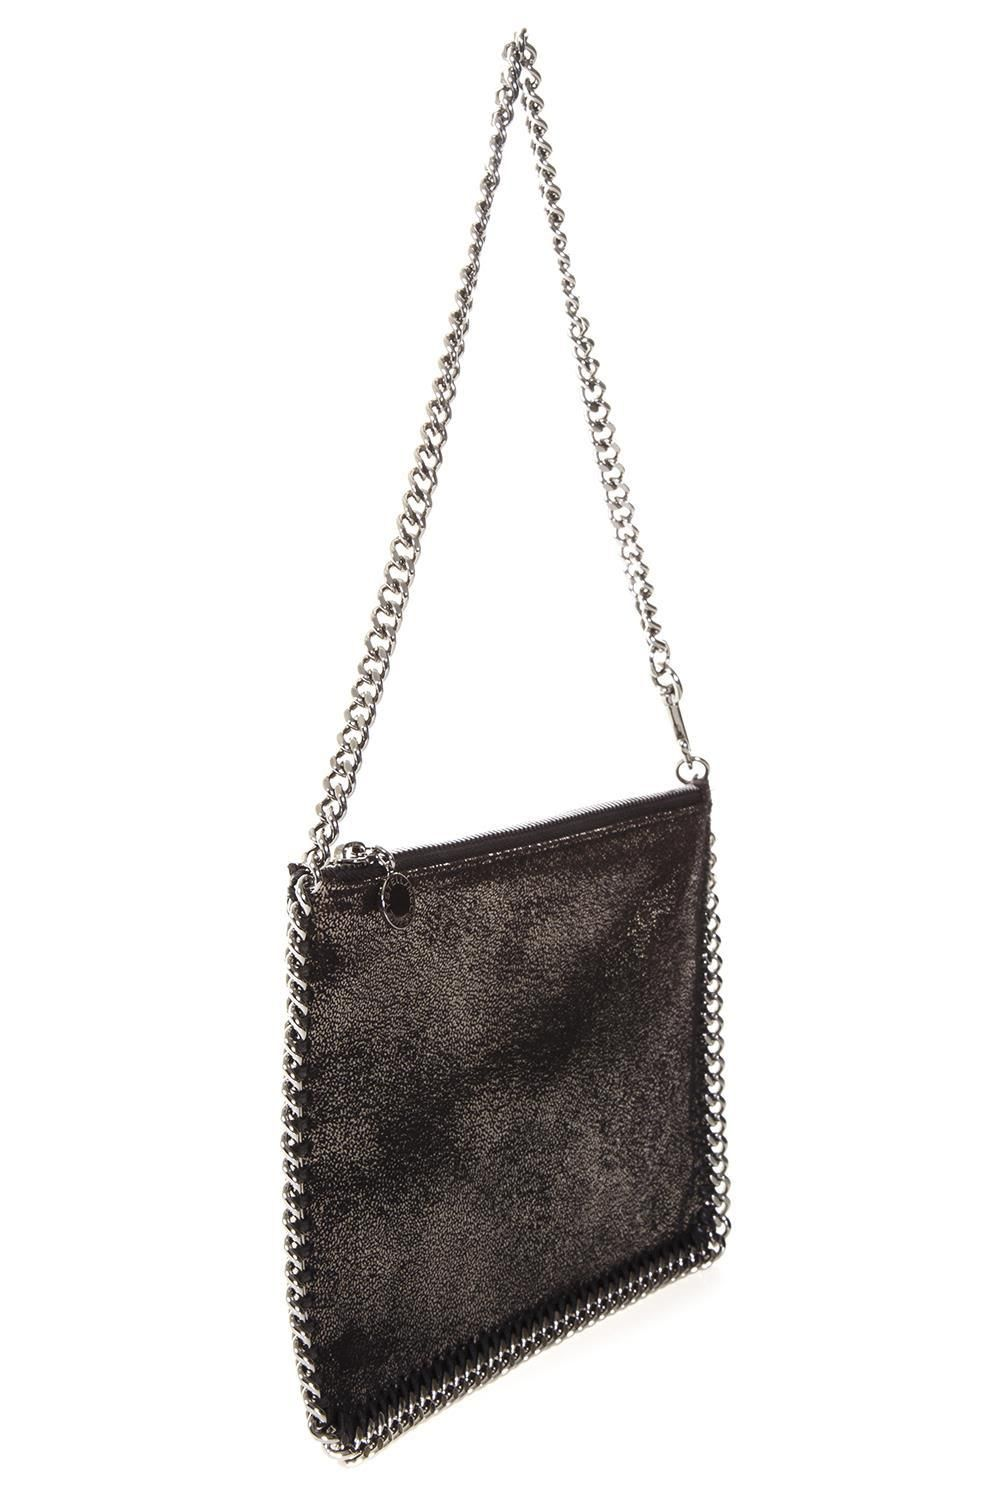 81377d6ff5f9  xmas  Christmas  Italist -  Stella McCartney Stella McCartney Ruthenium  Falabella Shaggy Deer